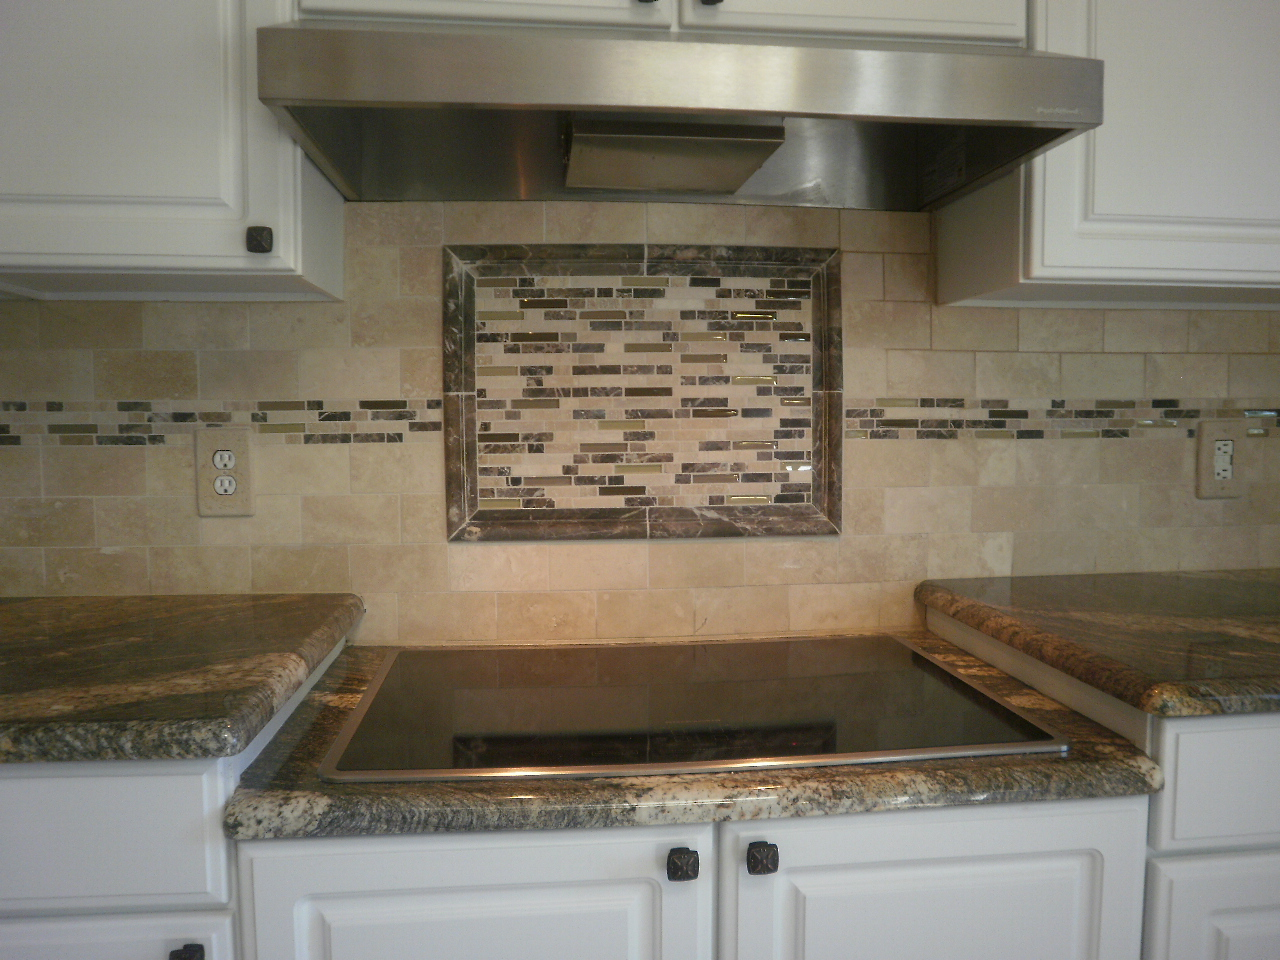 Kitchen backsplash ideas glass tile afreakatheart - Backsplash ideas kitchen ...